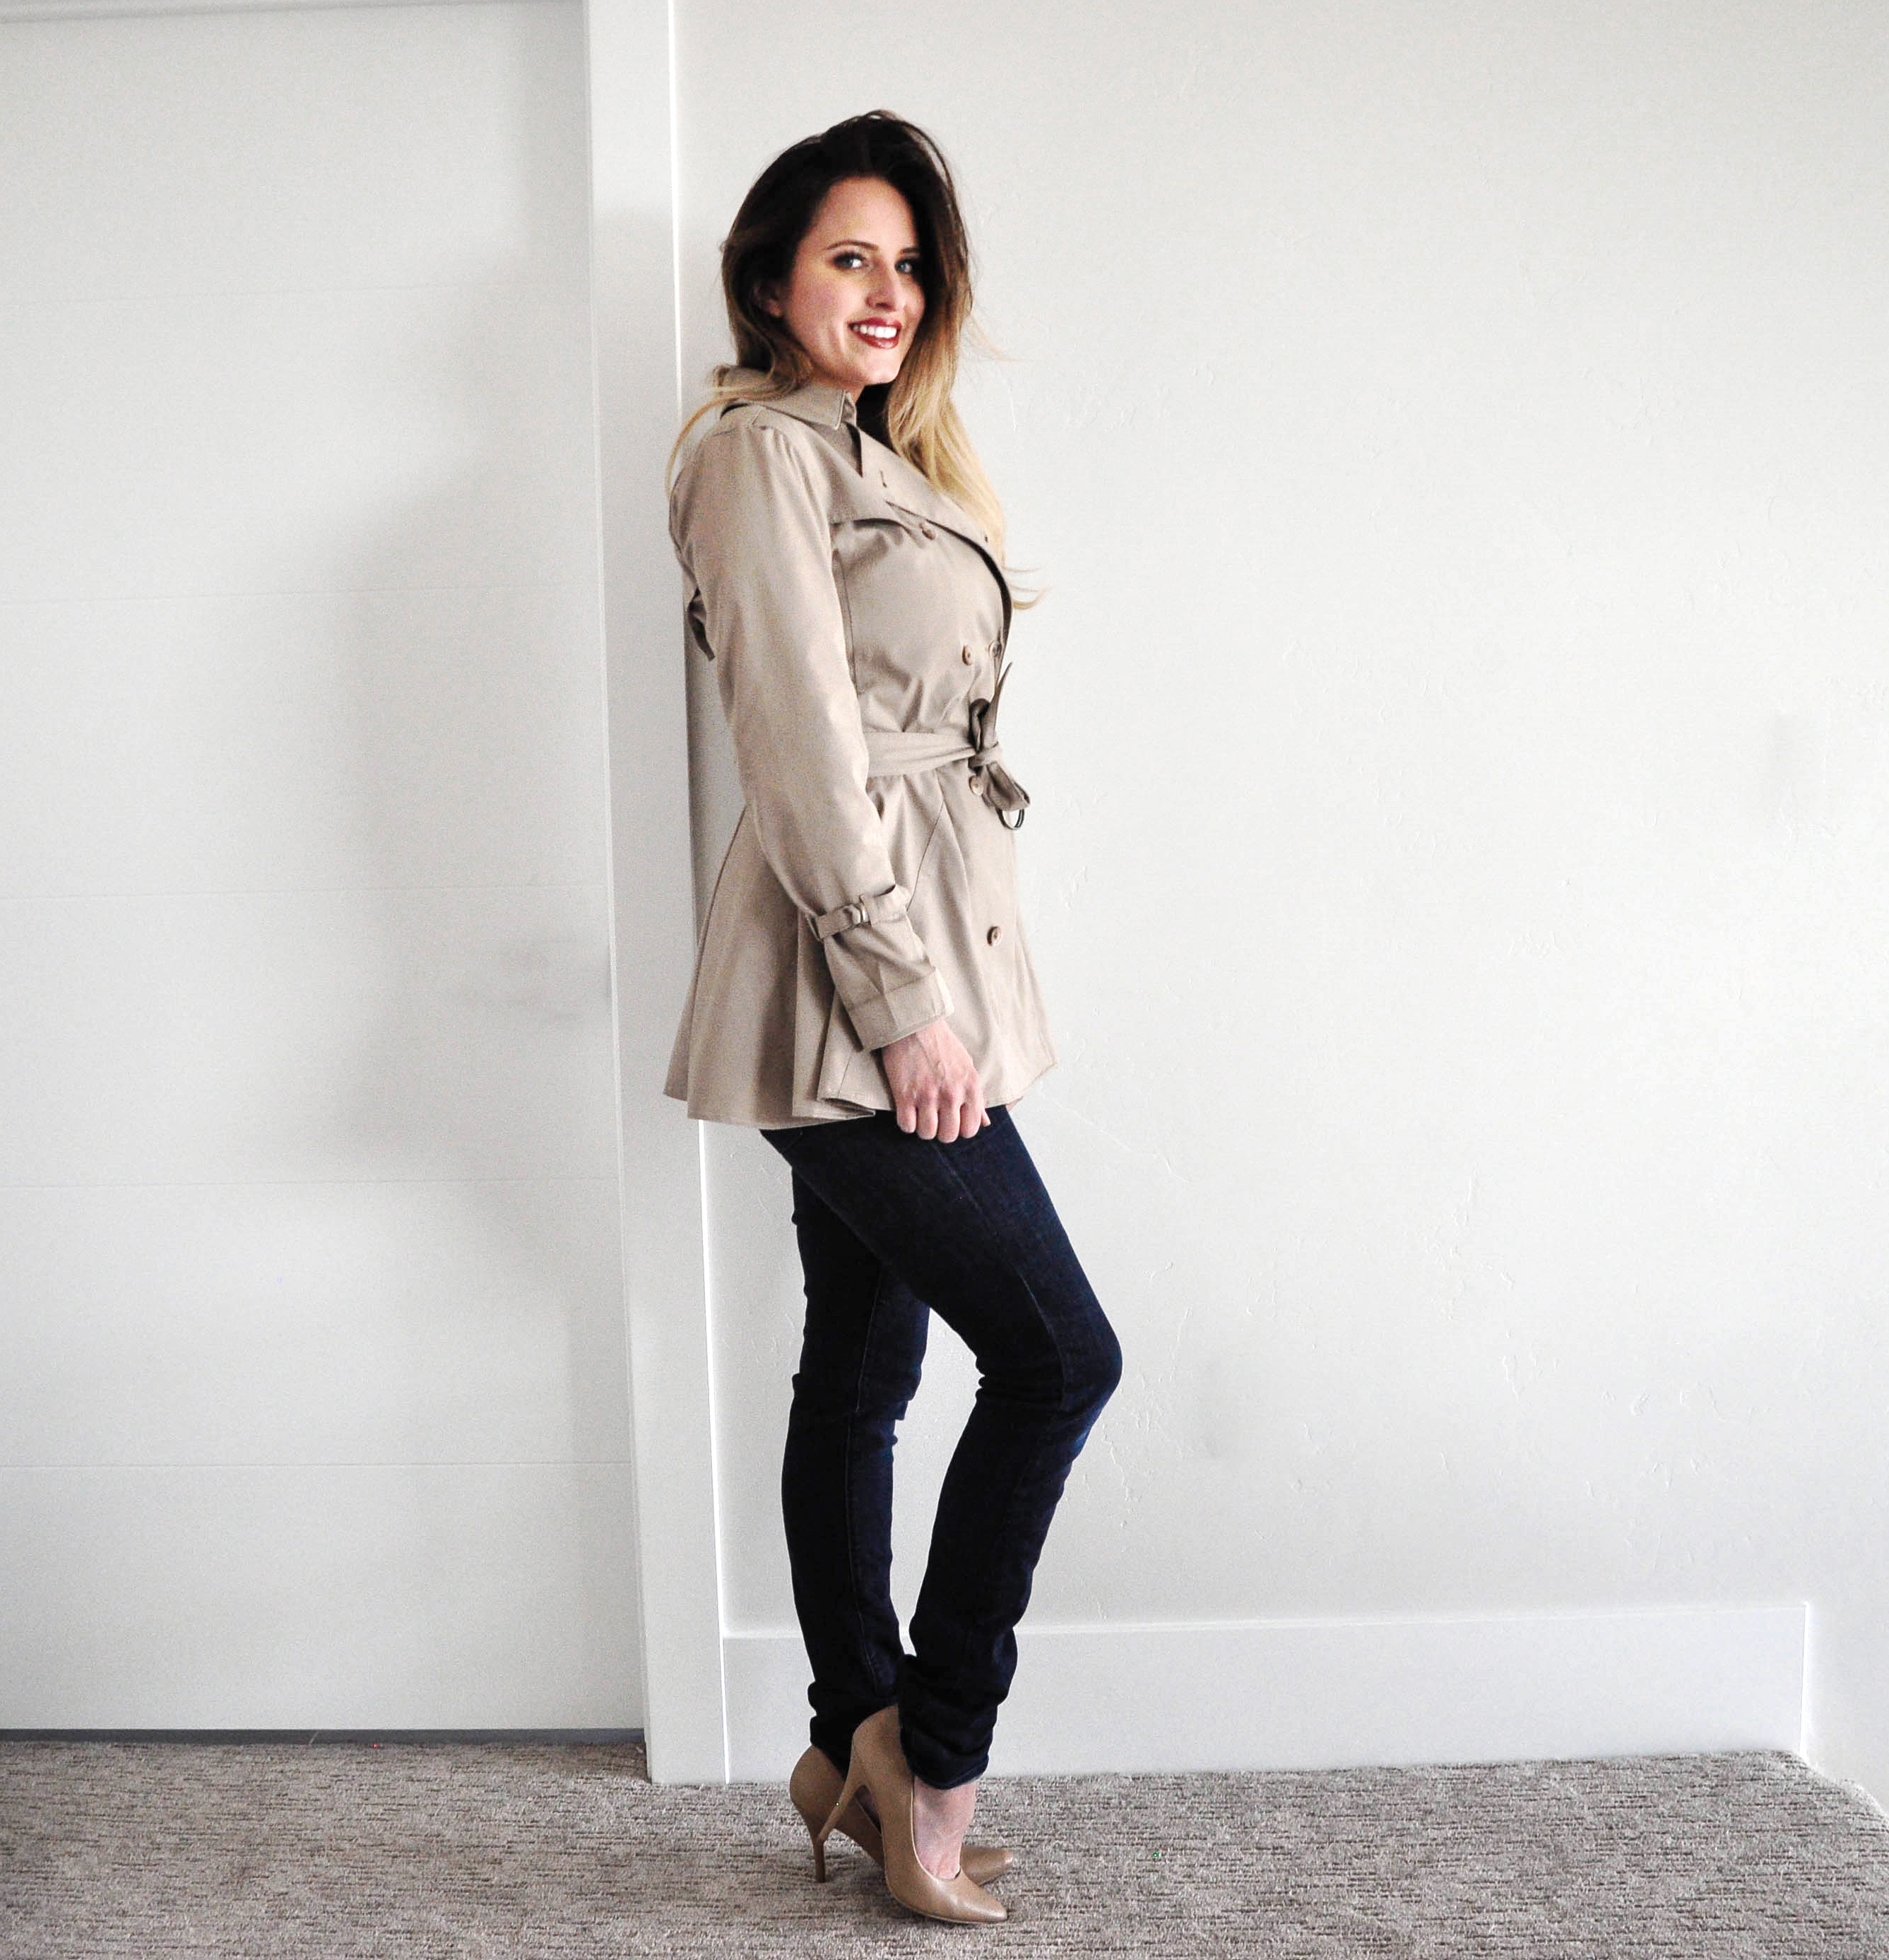 Tailoring a Trench Coat refashion tutorial featured by top US sewing blogger, Kara Metta | Refashion Series episode 4 Trench Coat Refashion. Love this series!